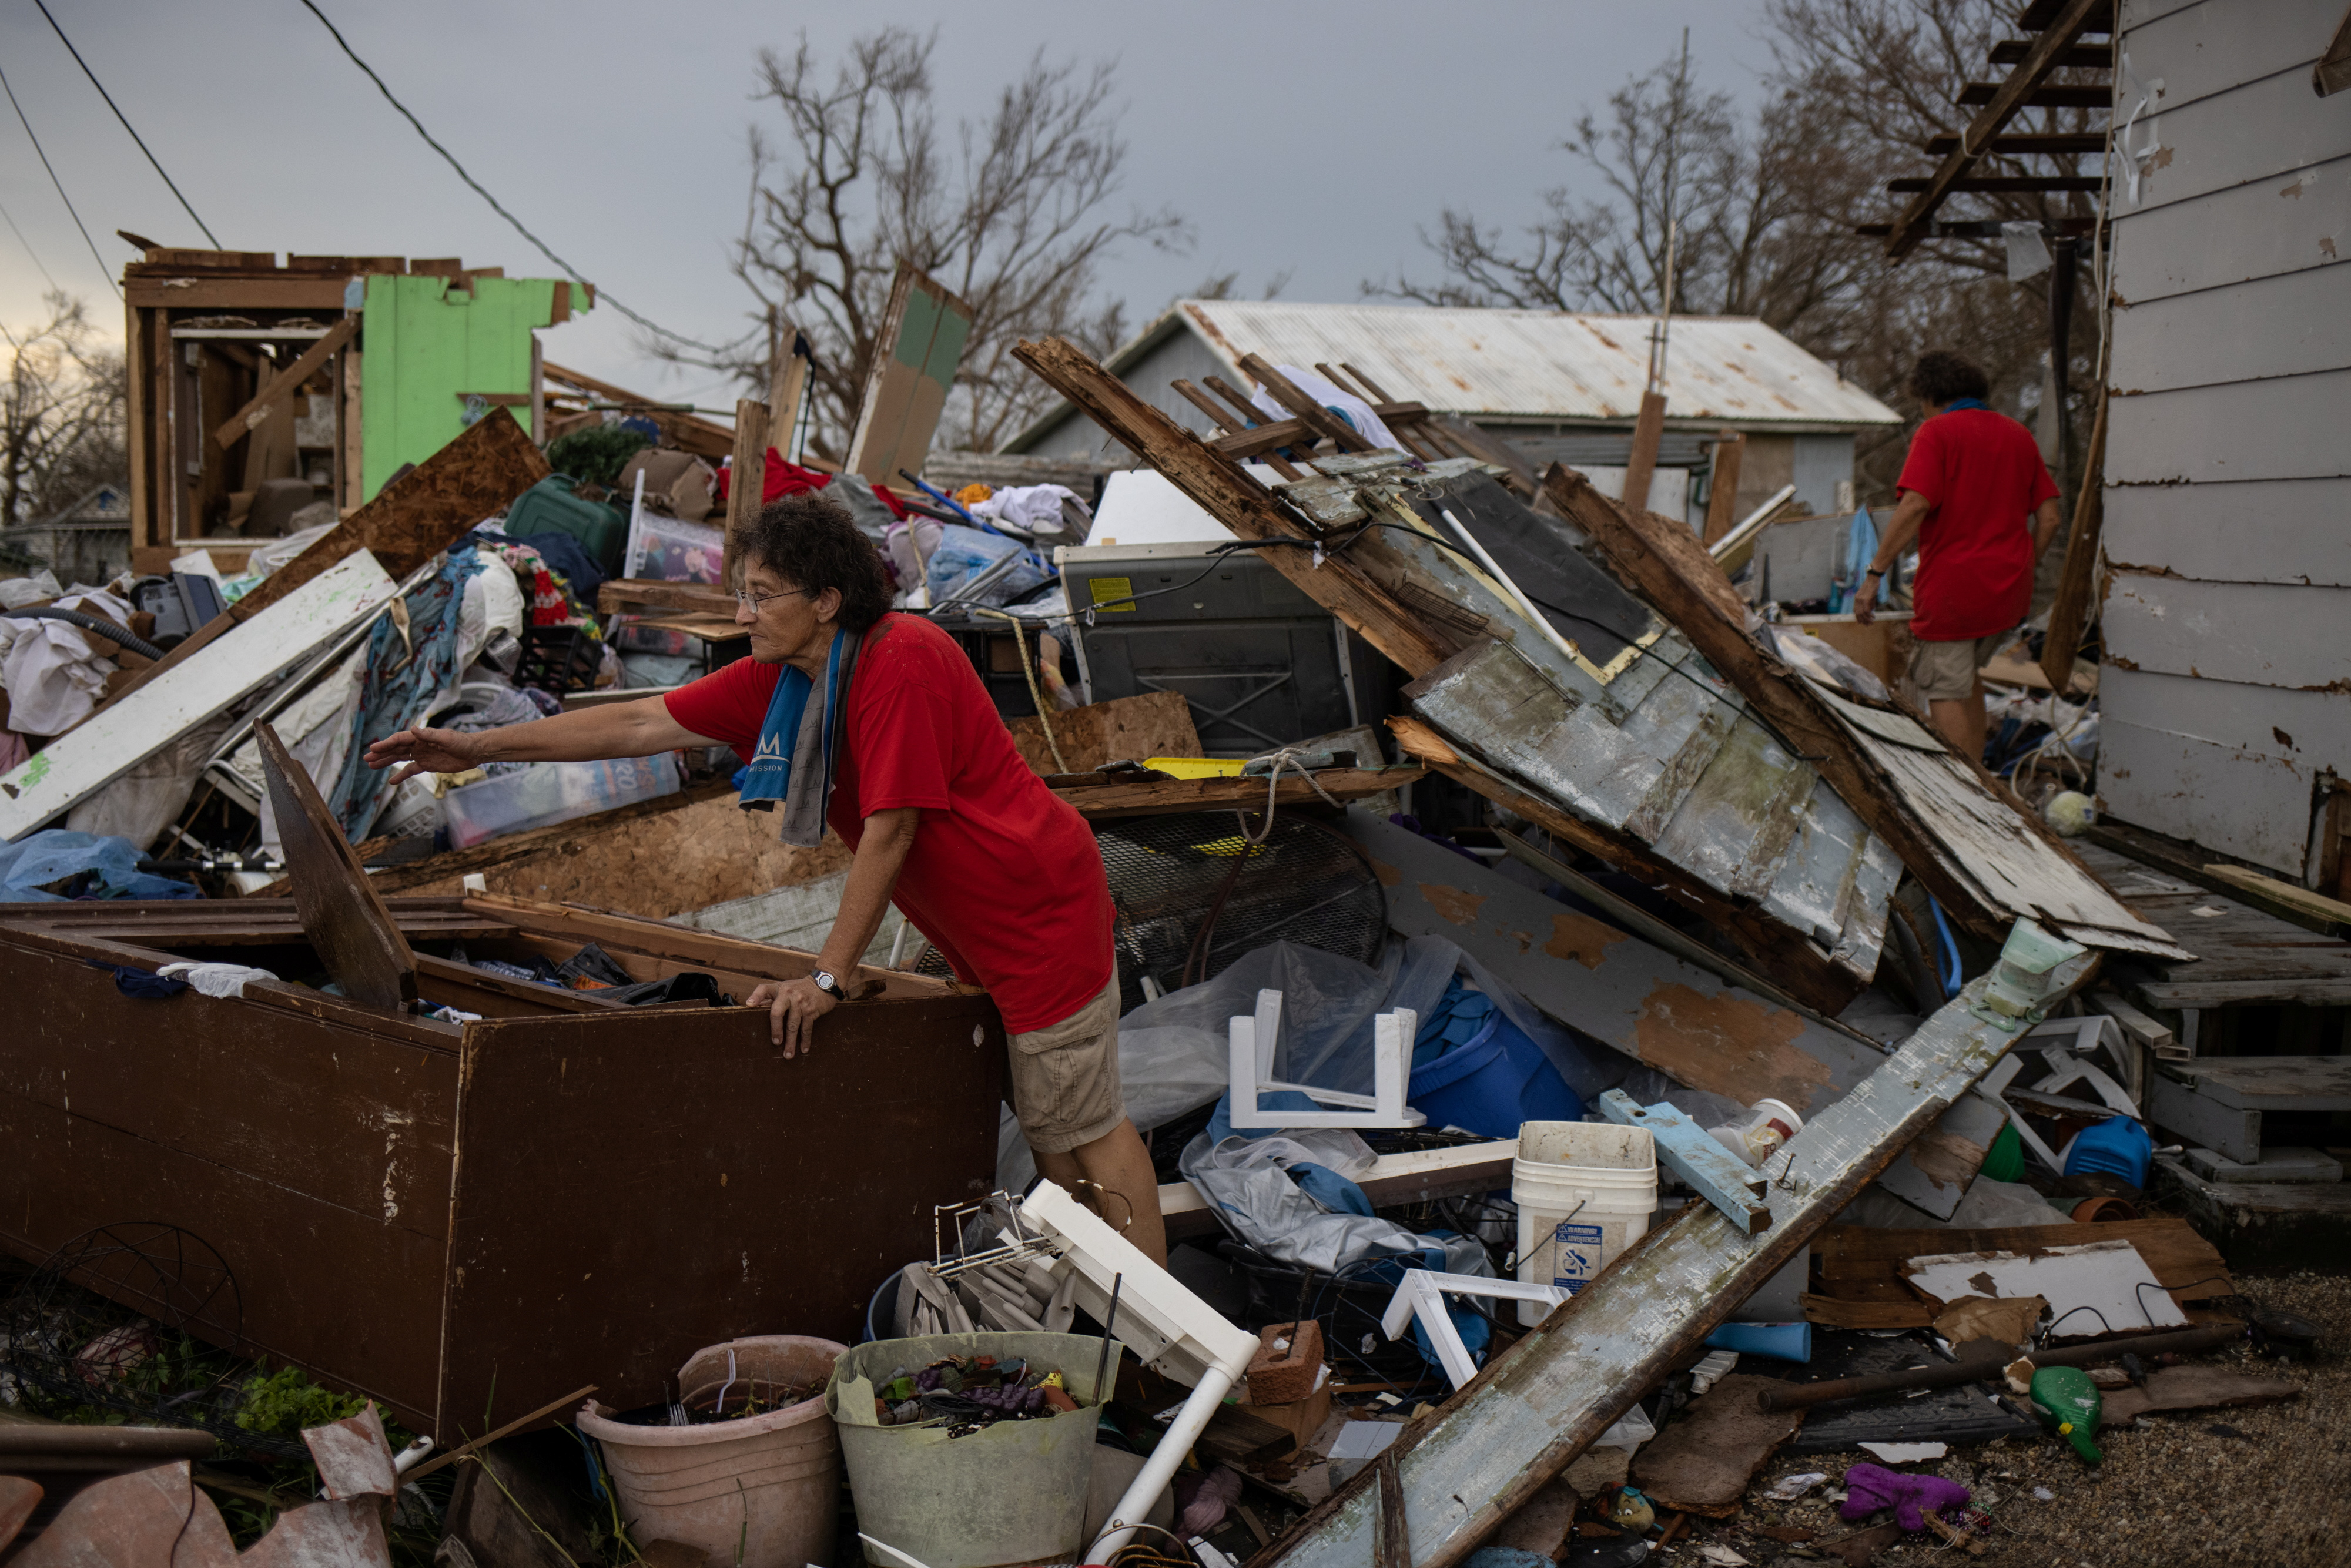 Twin sisters Bridget and Rosalie Serigny, 66, search for personal items stored in their shed which was left destroyed in the aftermath of Hurricane Ida in Golden Meadow, Louisiana, U.S., September 1, 2021.  REUTERS/Adrees Latif